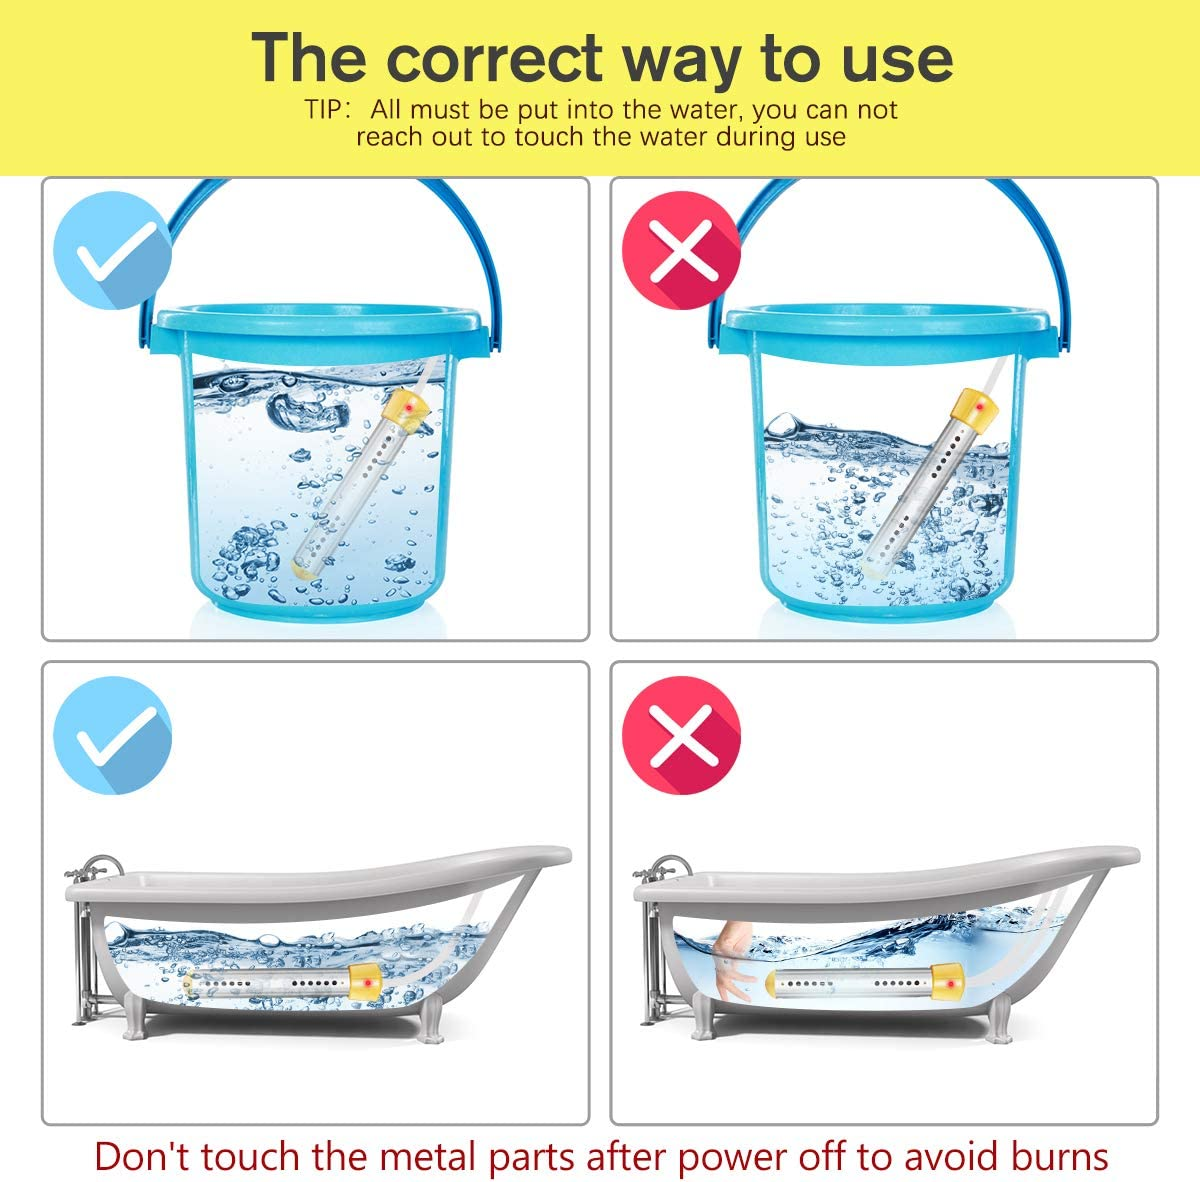 Electric Submersible Instant Water Heater with Metal Guard Cover Portable Bucket Heater to Heat 5 Gallons of Water in Minutes for Bathtub,Inflatable Pool,Fully Immersed While Using Immersion Heater